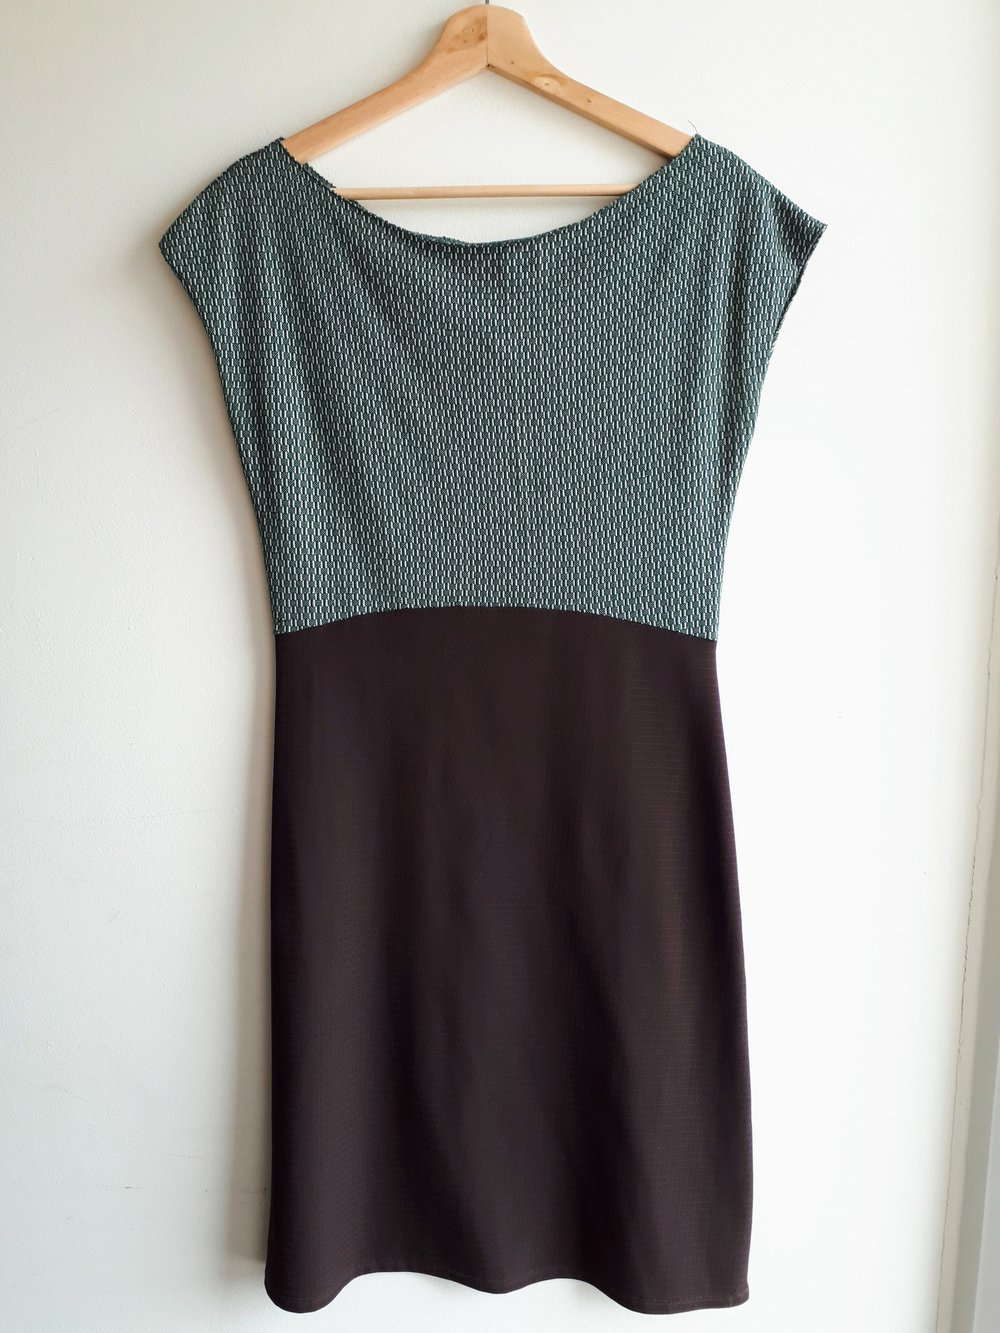 Sessa dress; Size M, $52